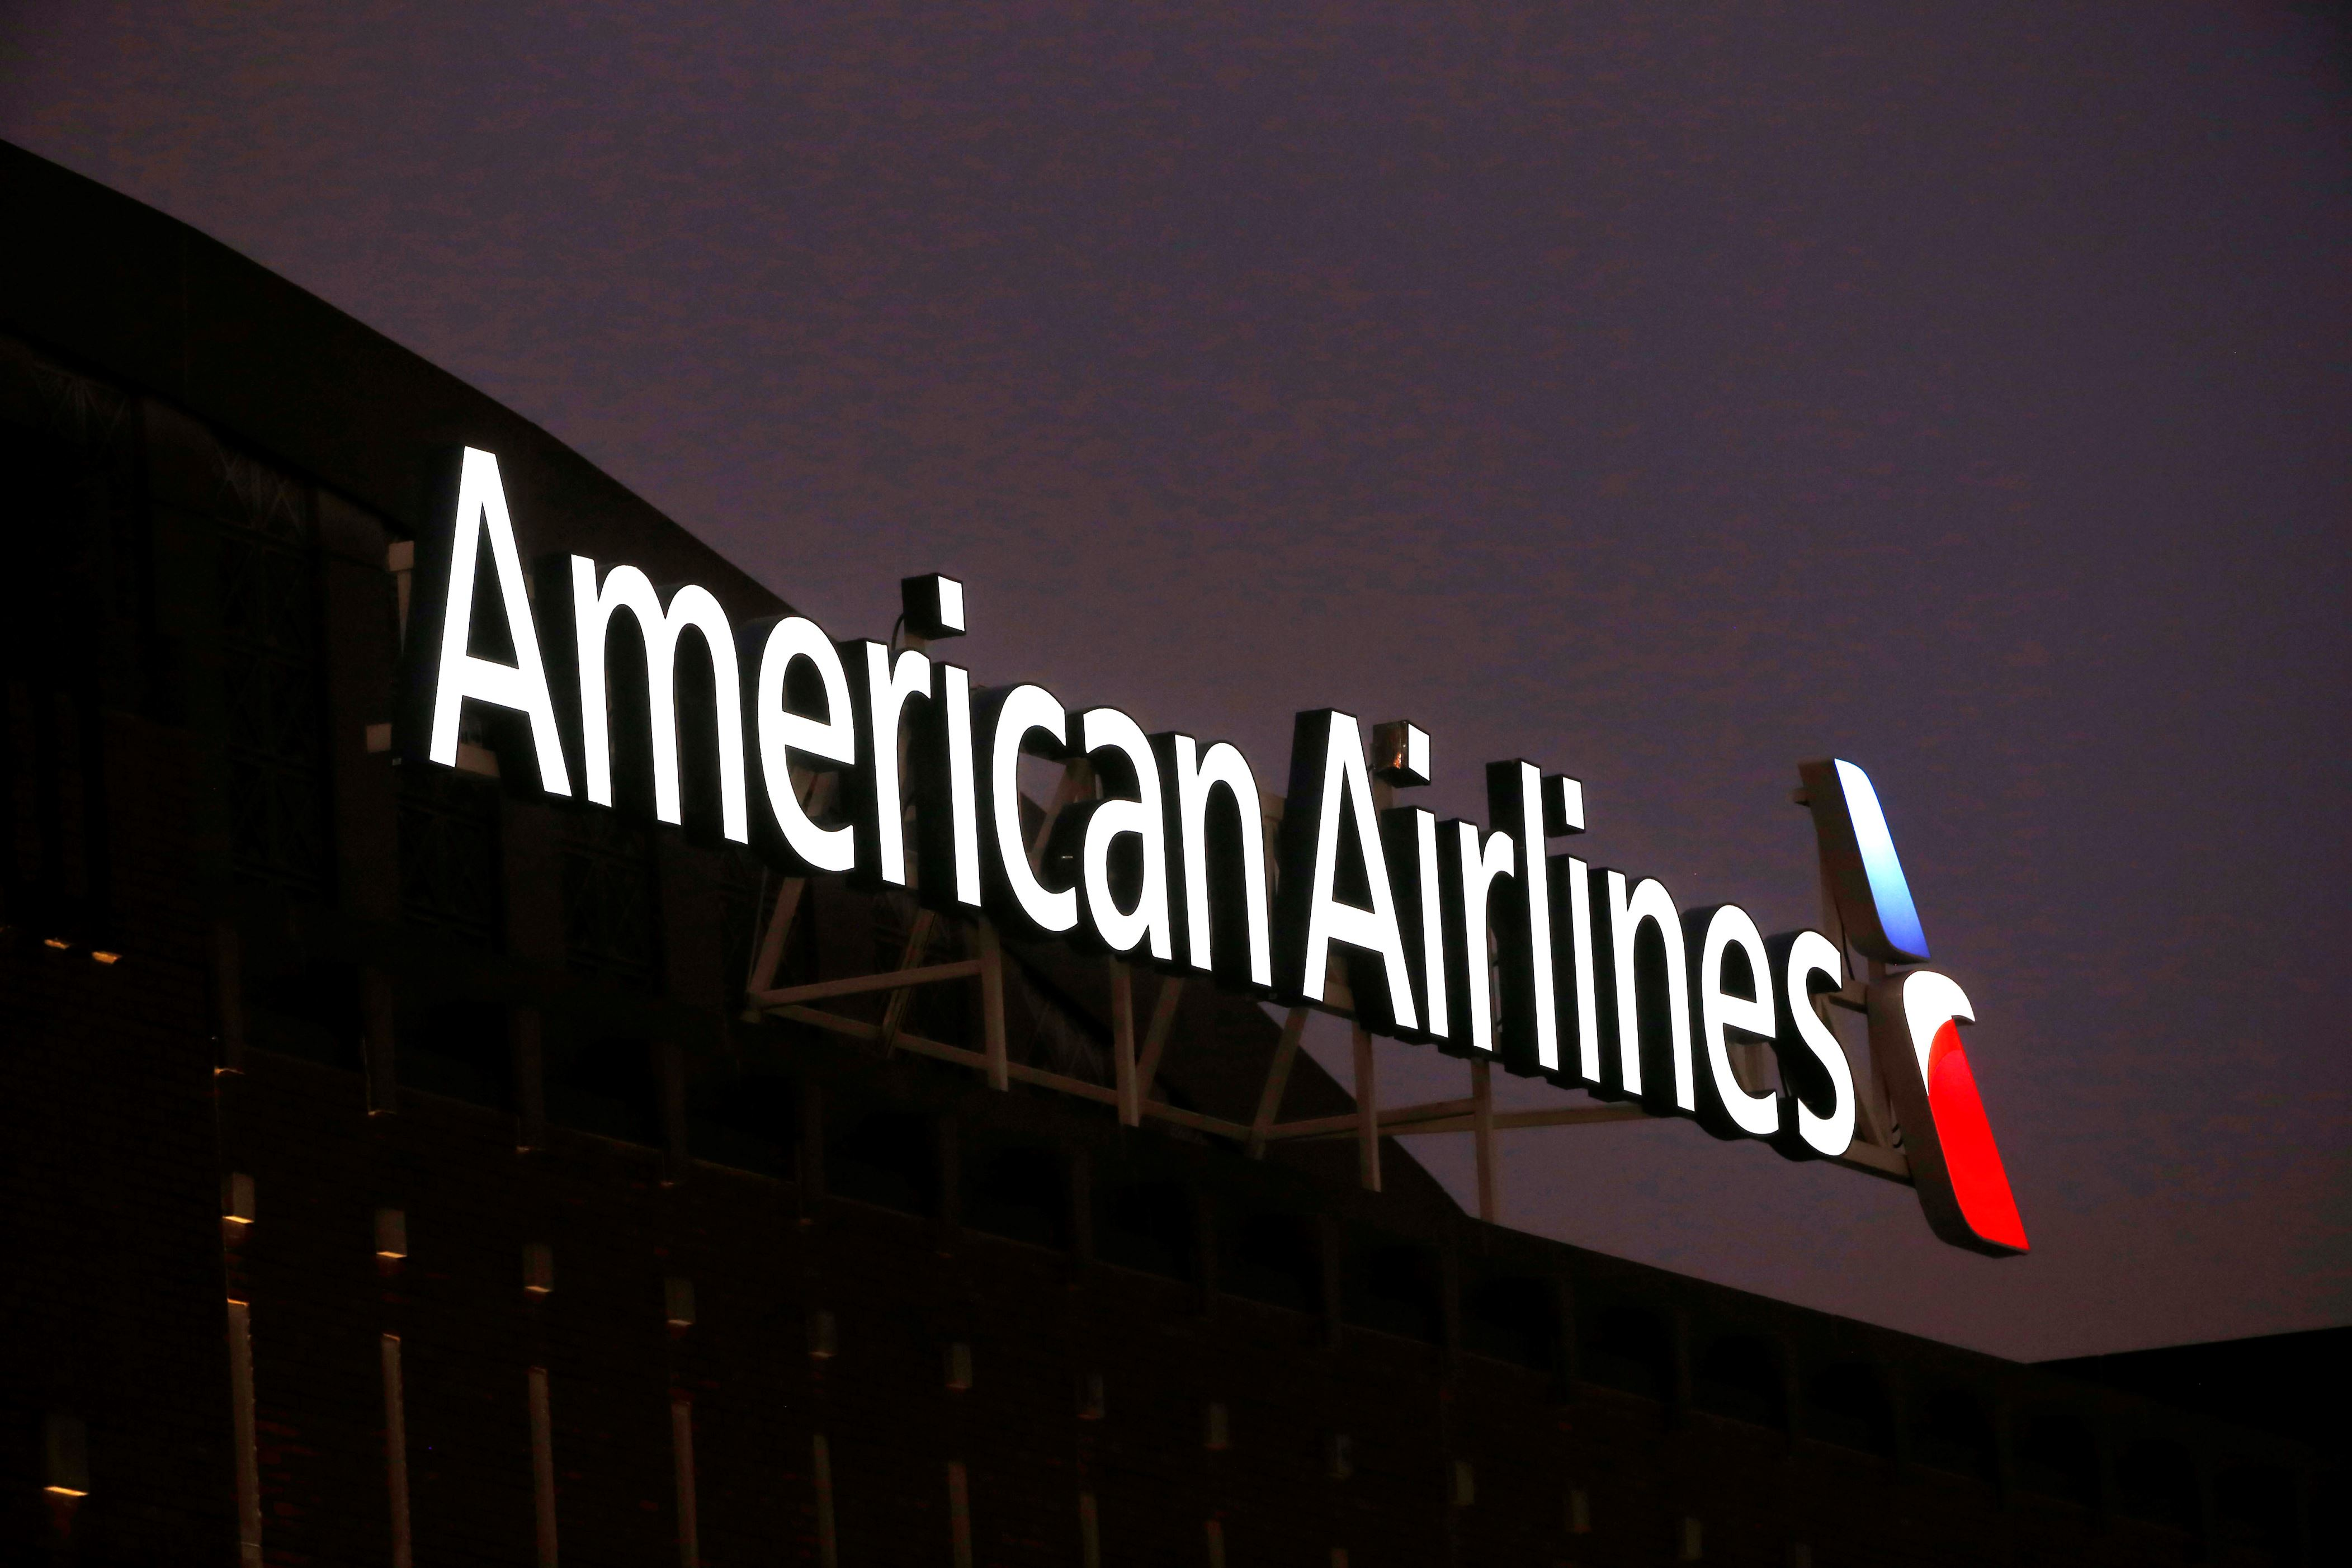 This Dec. 19, 2017, photo shows the American Airlines logo on top of the American Airlines Center in Dallas. American Airlines reported Thursday, Jan. 25, 2018, that fourth-quarter profit slipped 11 percent as higher costs for fuel and labor offset rising revenue. (AP Photo/ Michael Ainsworth)